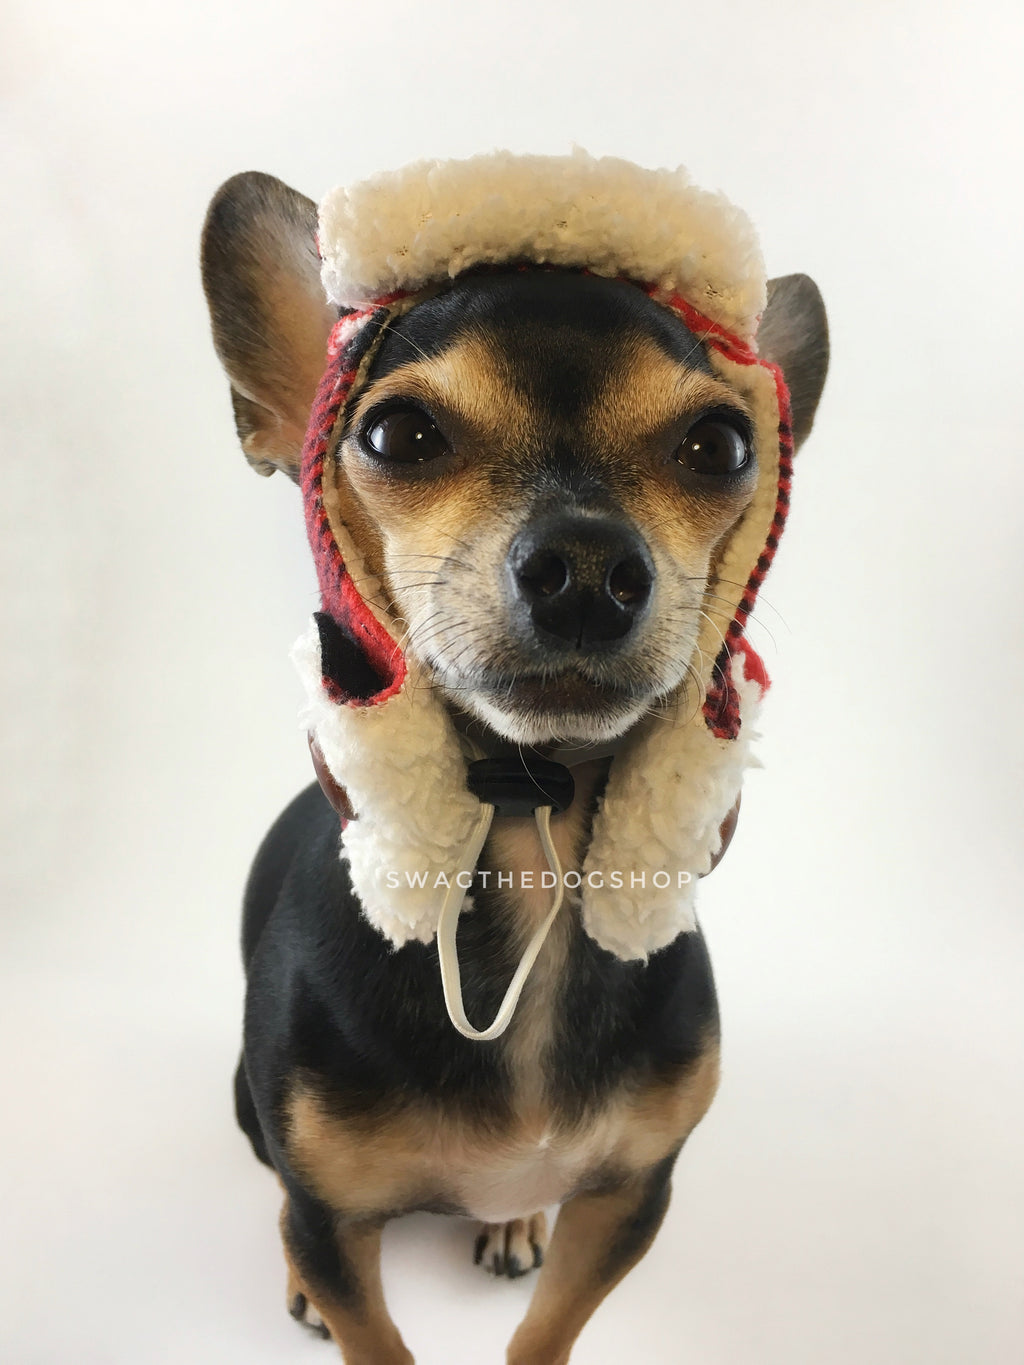 True North Aviator Hat. Front view of Hugo, black and tan Chihuahua wearing the hat. Hand-made with red plaid fleece fabric with sherpa inside, a hole for each ears, side flap with buttons on and a drawstring under the chin to adjust. The front bill is flipped back to show the sherpa fabric.